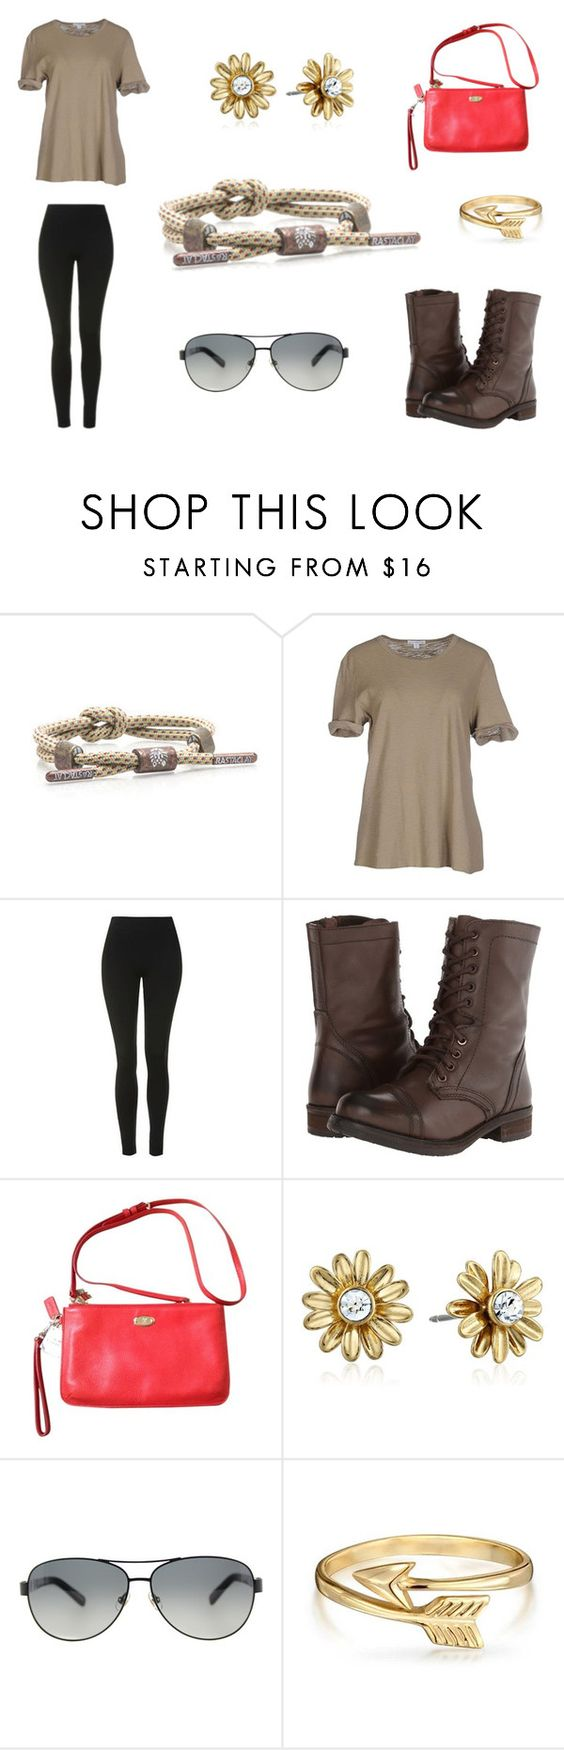 """Knotaclat: Grounds"" by rastaclat-official ❤ liked on Polyvore featuring James Perse, Topshop, Steve Madden, Coach, Kate Spade, Bling Jewelry, ootd, accessories, fashionset and rastaclat"